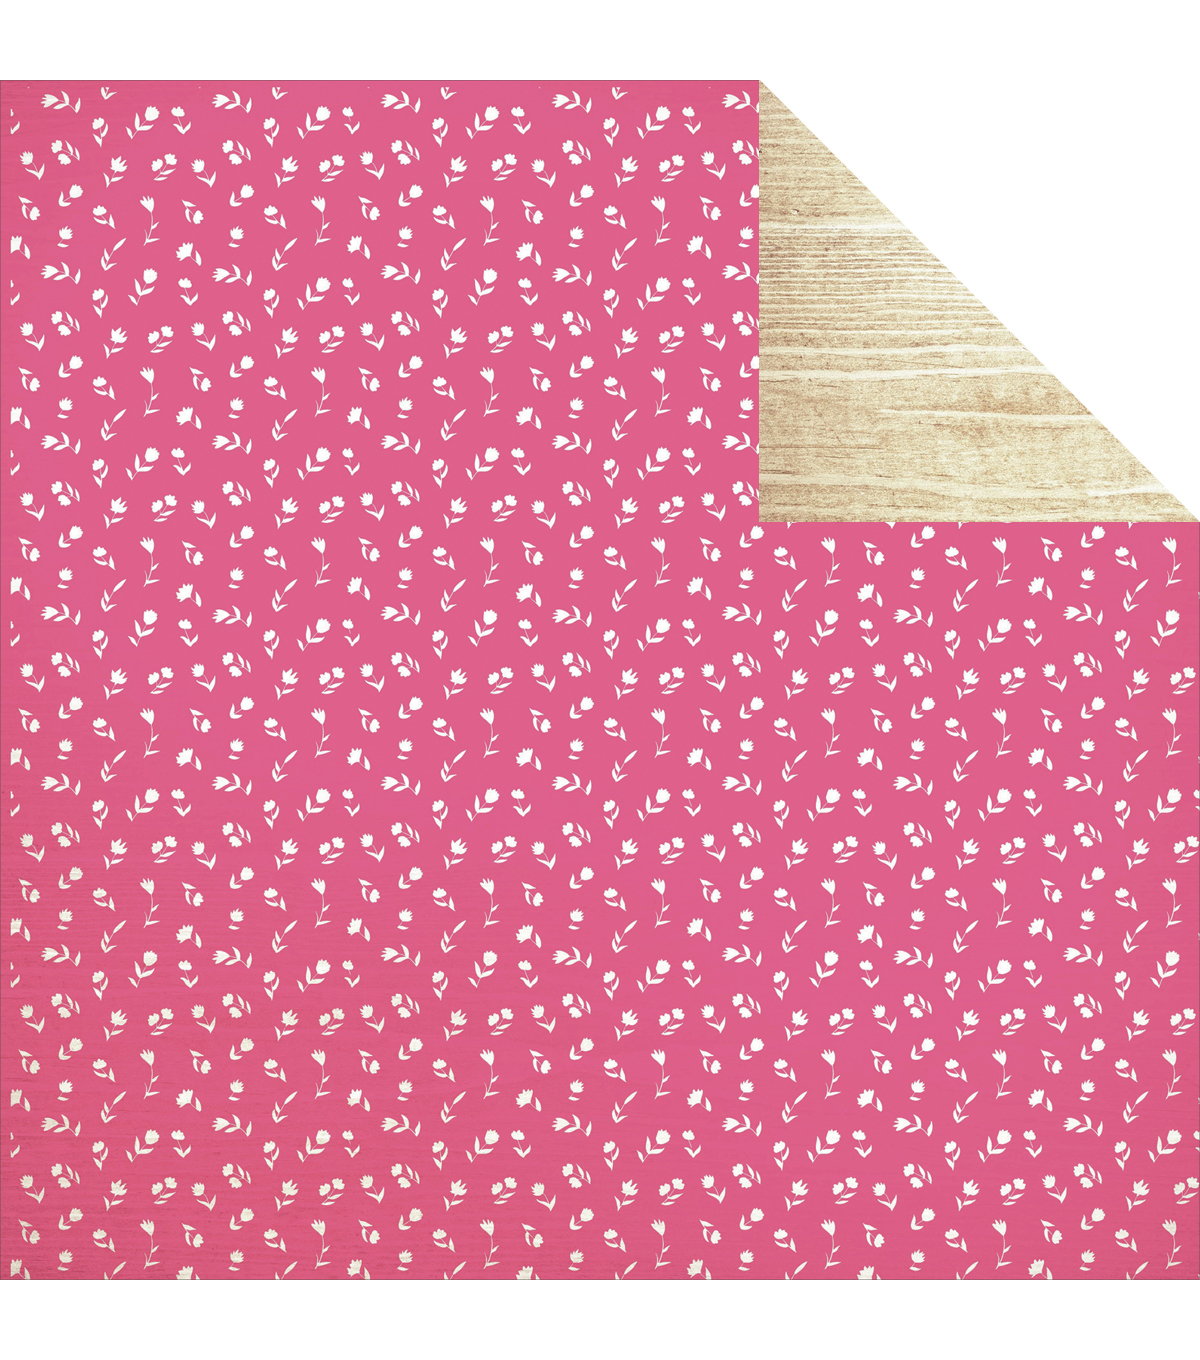 Kaisercraft Happy Snap Picture Perfect Double-Sided Cardstock